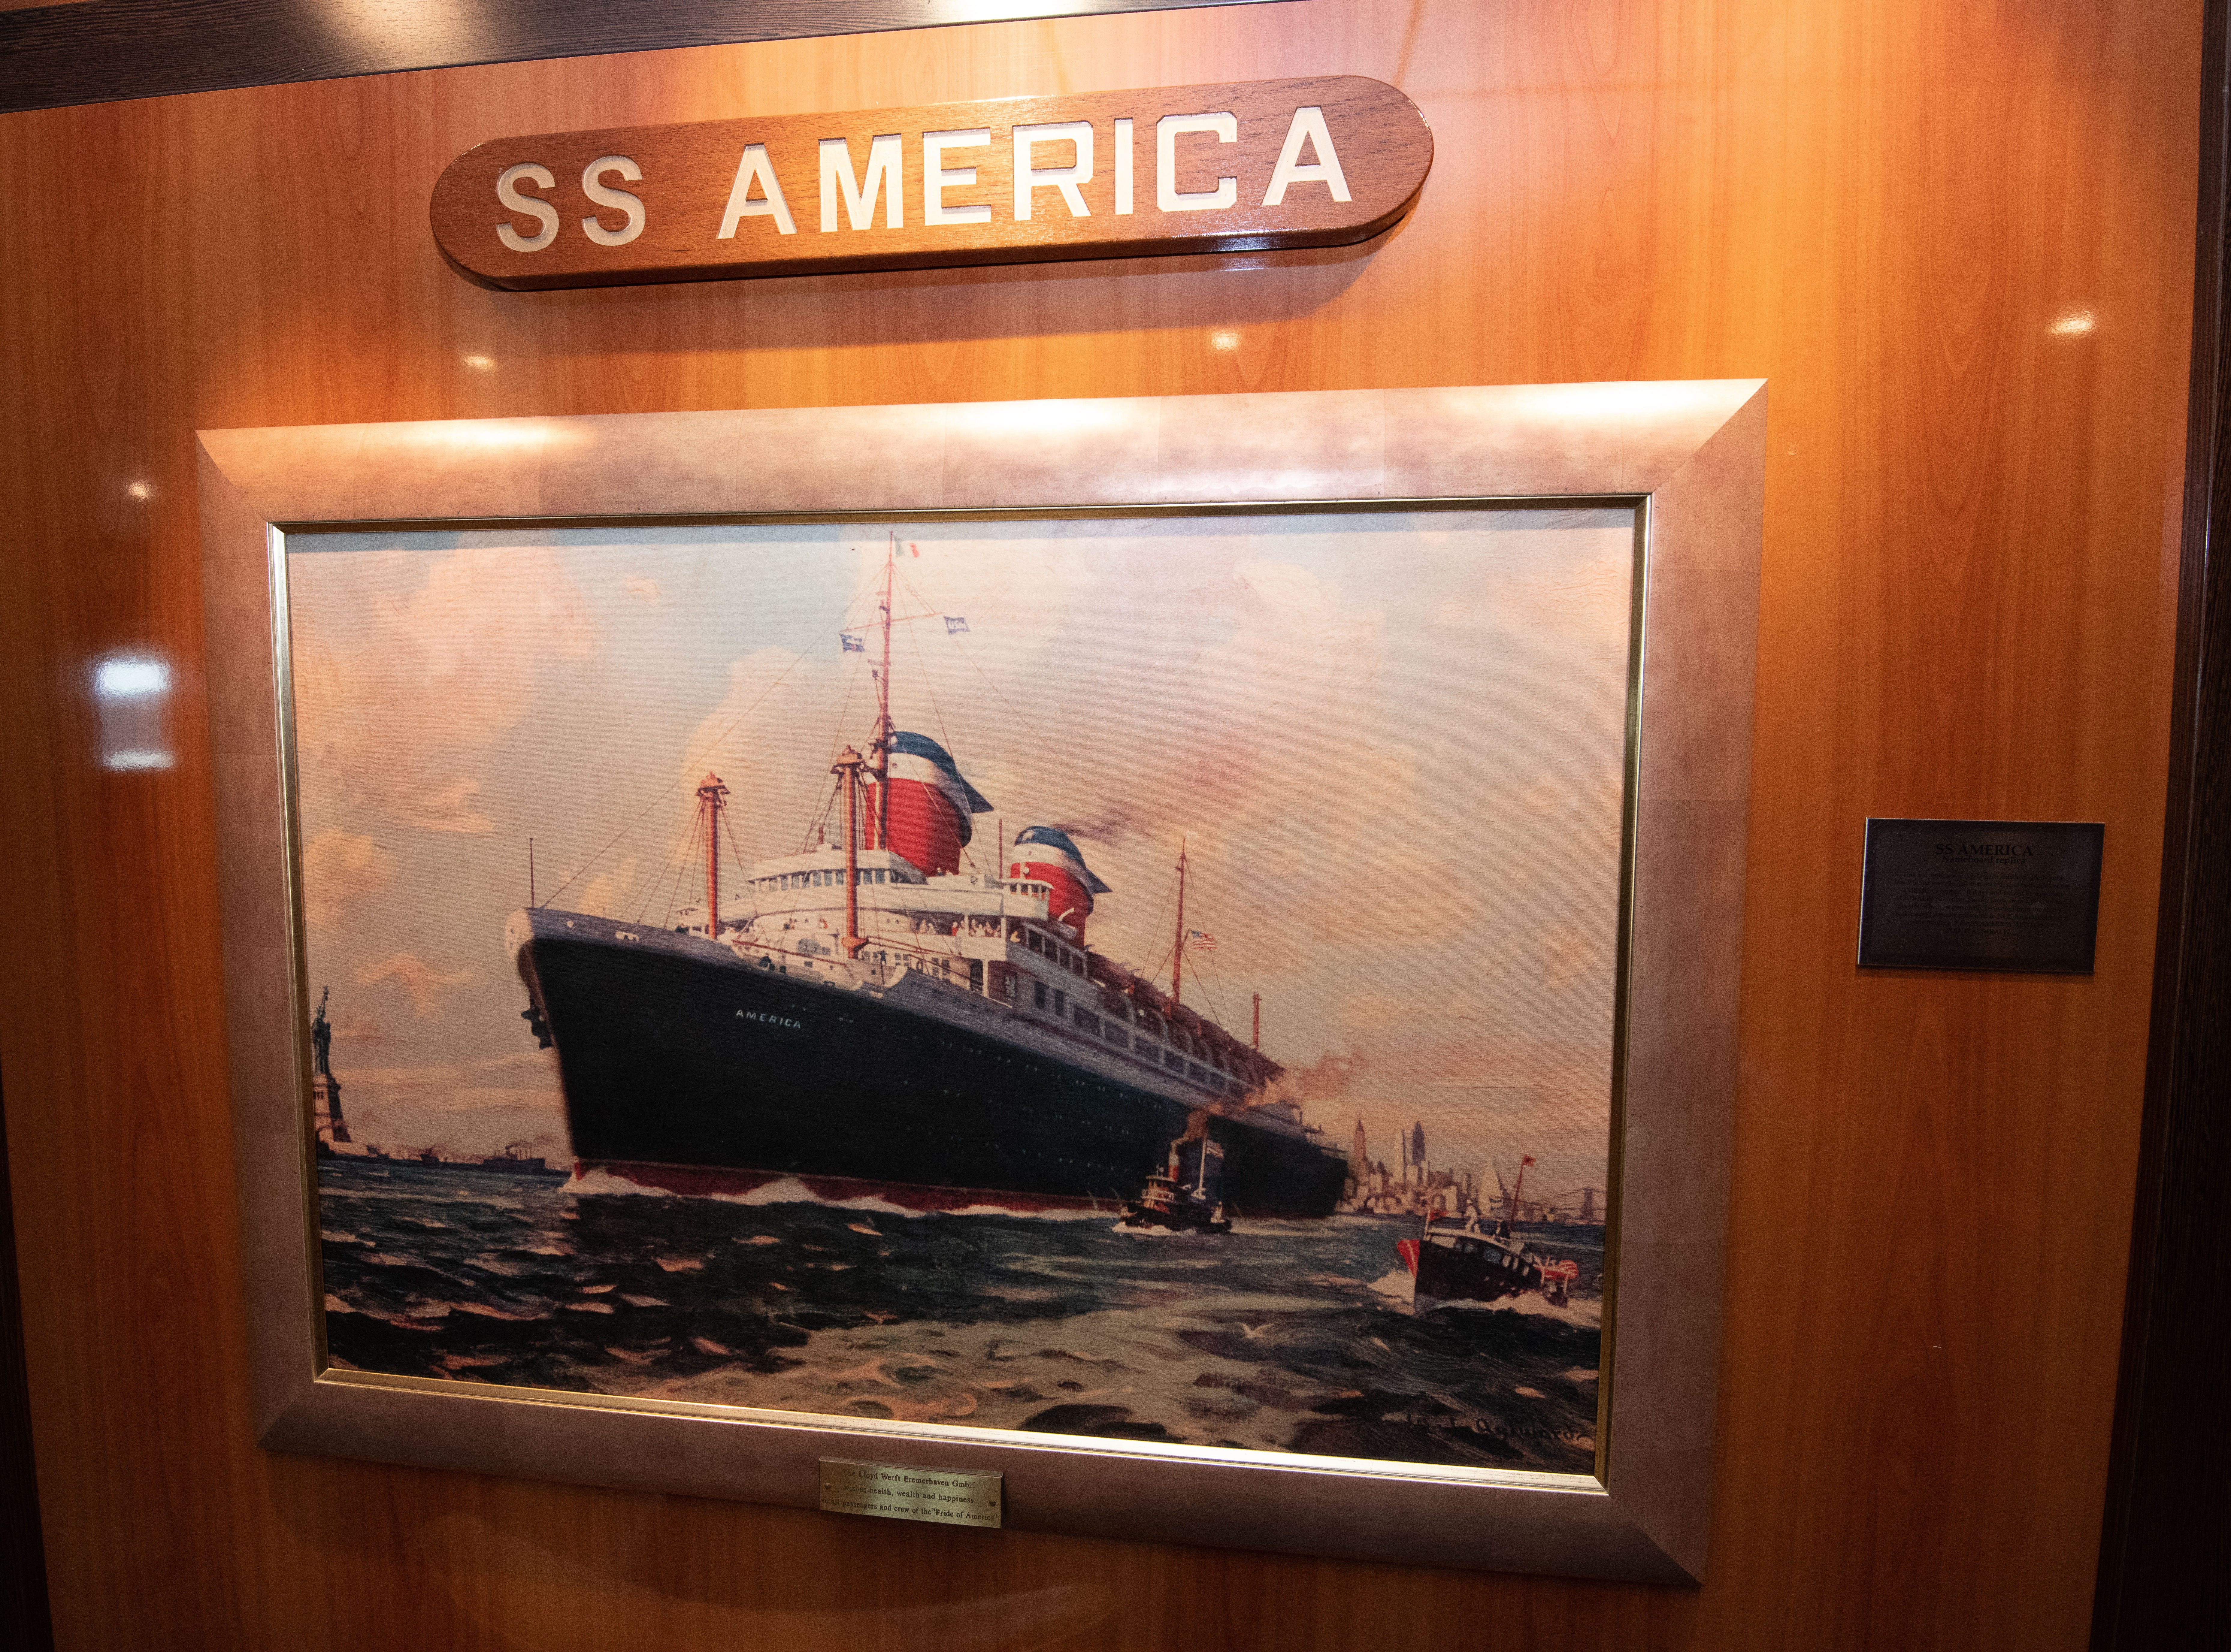 A painting of the ocean liner SS America is a focal point of the SS America Library.